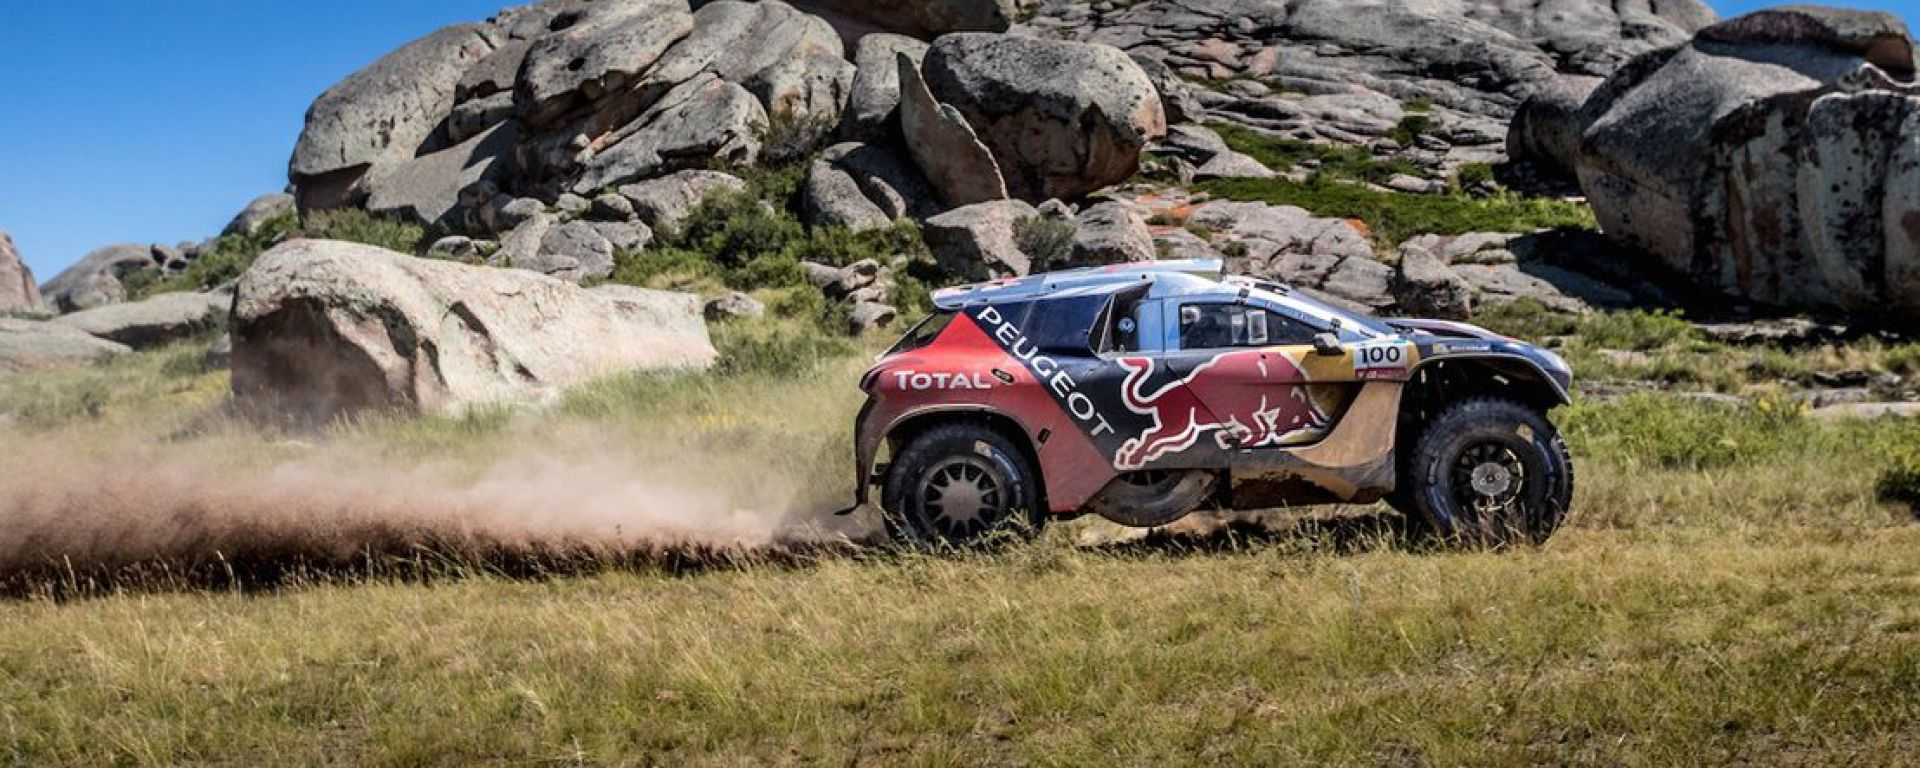 Silk Way Rally Tappa 5: Despres 1° con Peugeot